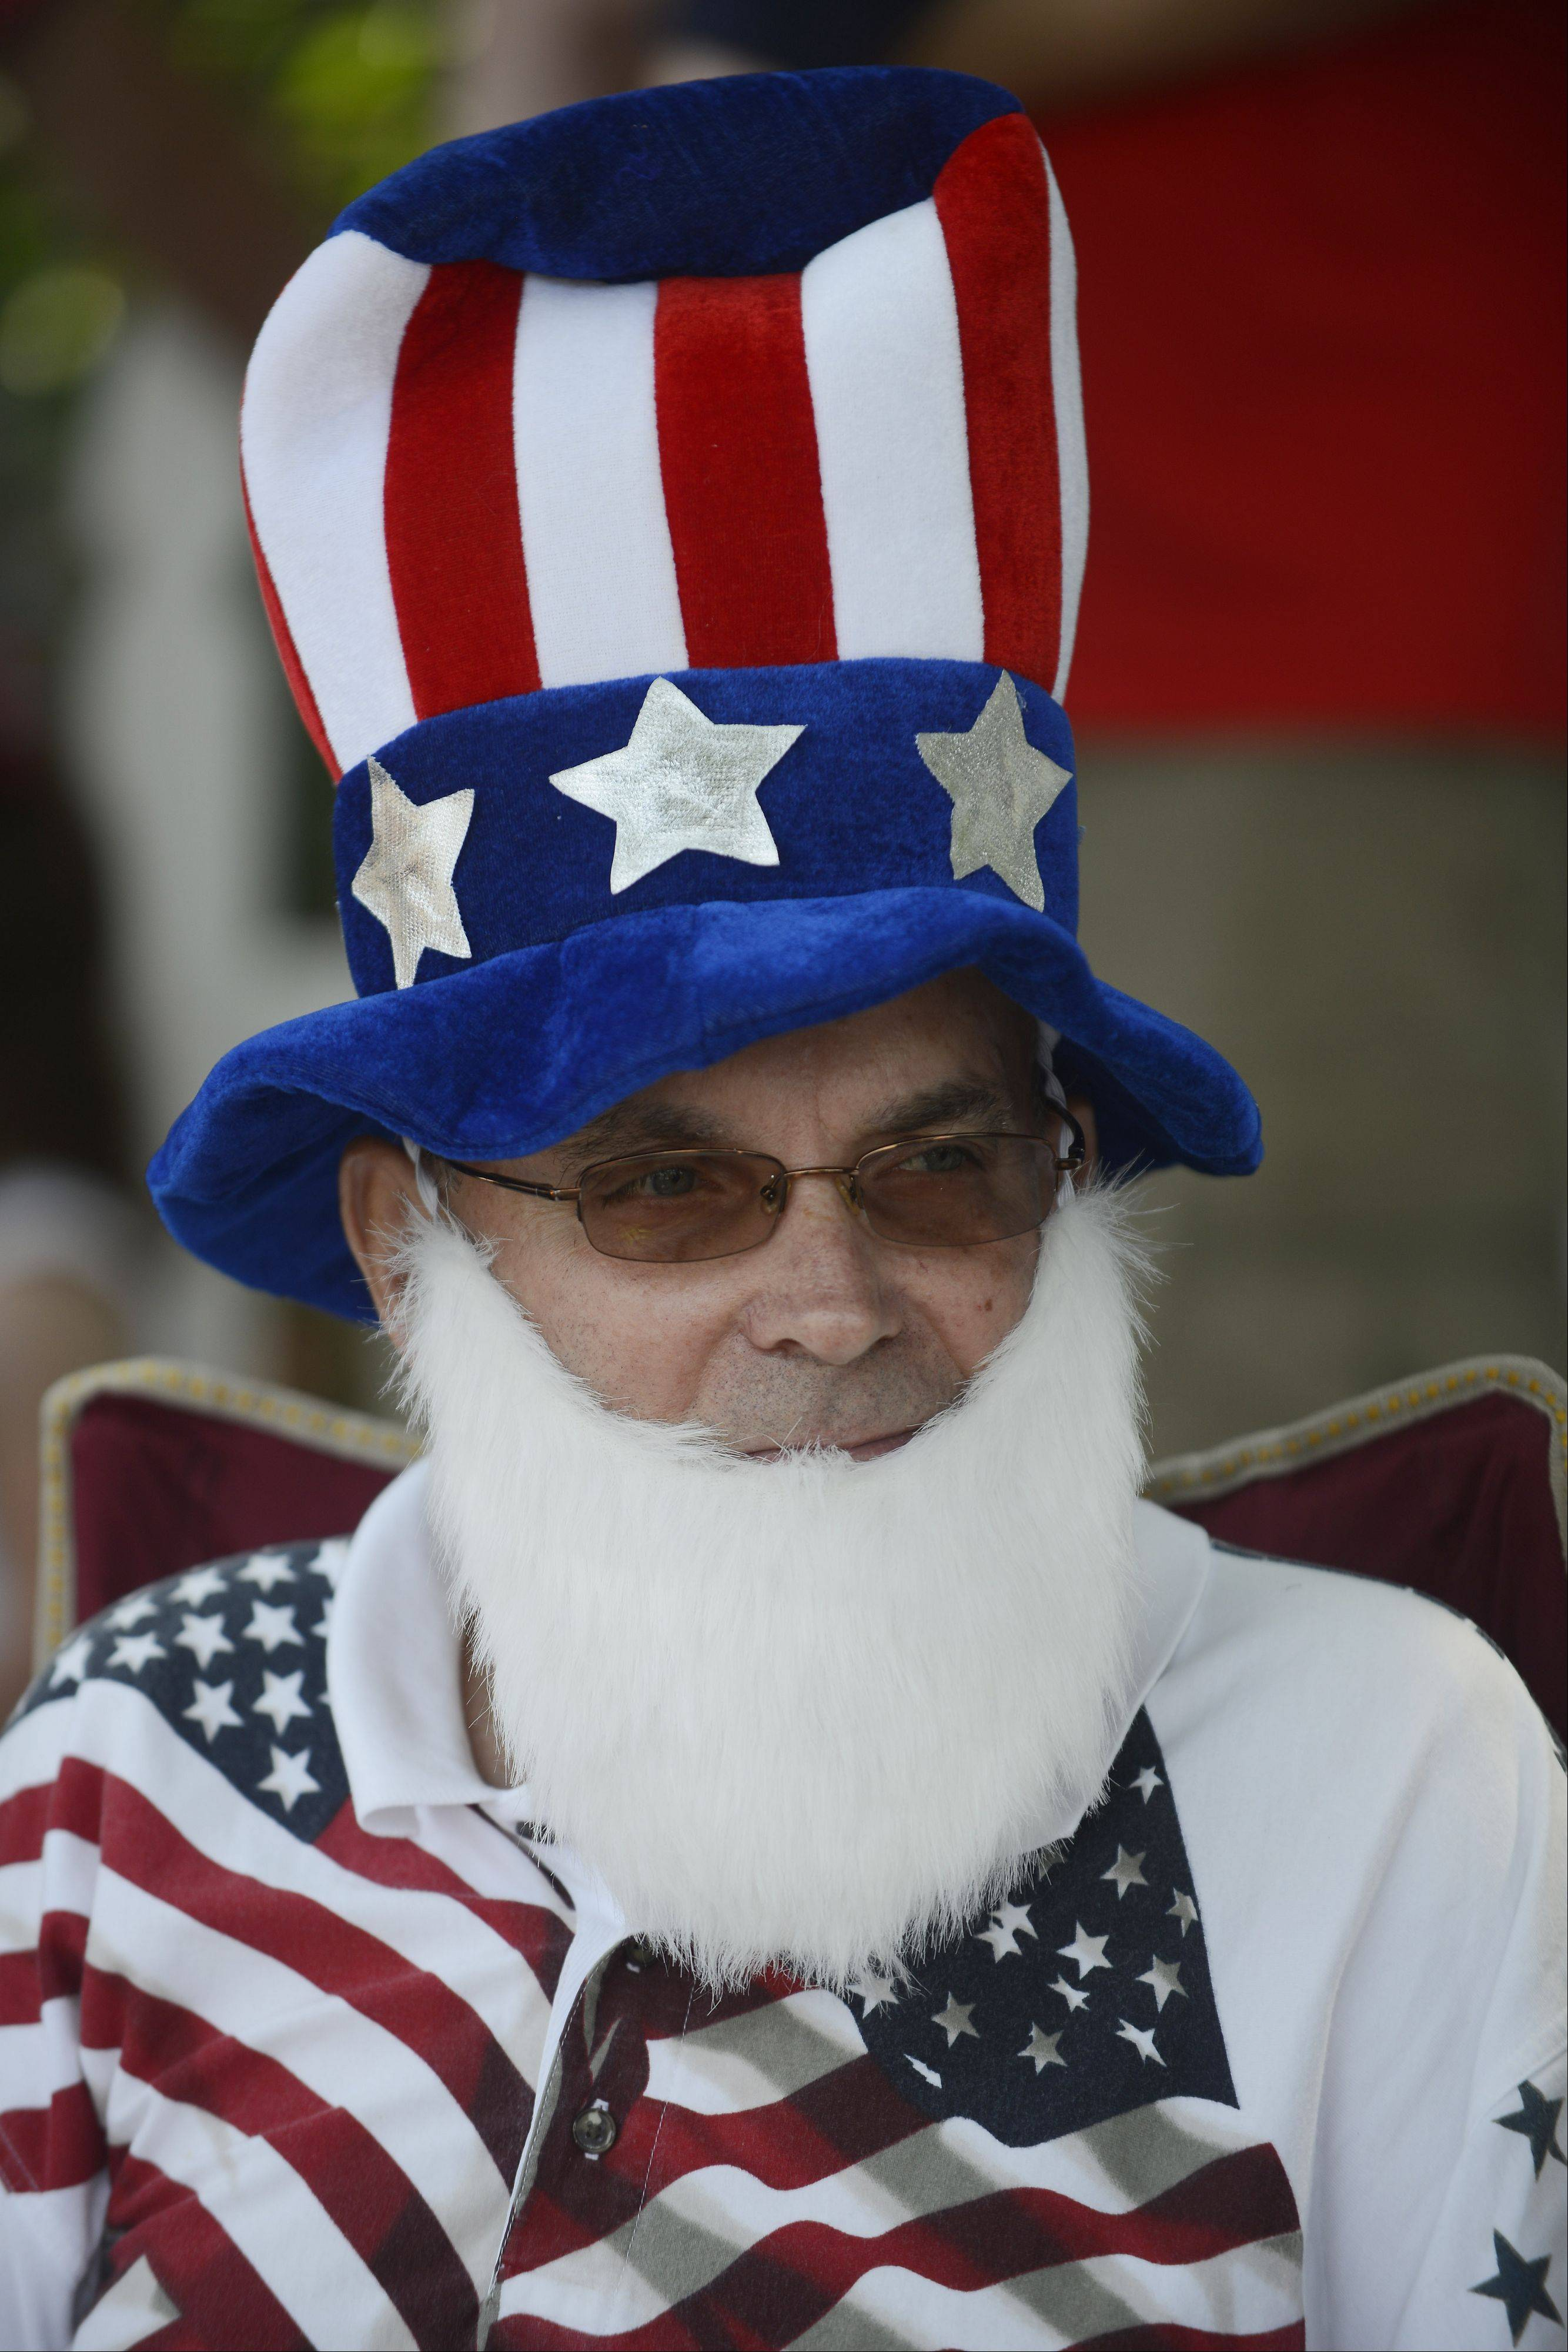 Jim Grzenia of Arlington Heights wears an Uncle Sam hat and beard while watching the Arlington Heights Fourth of July parade Thursday.